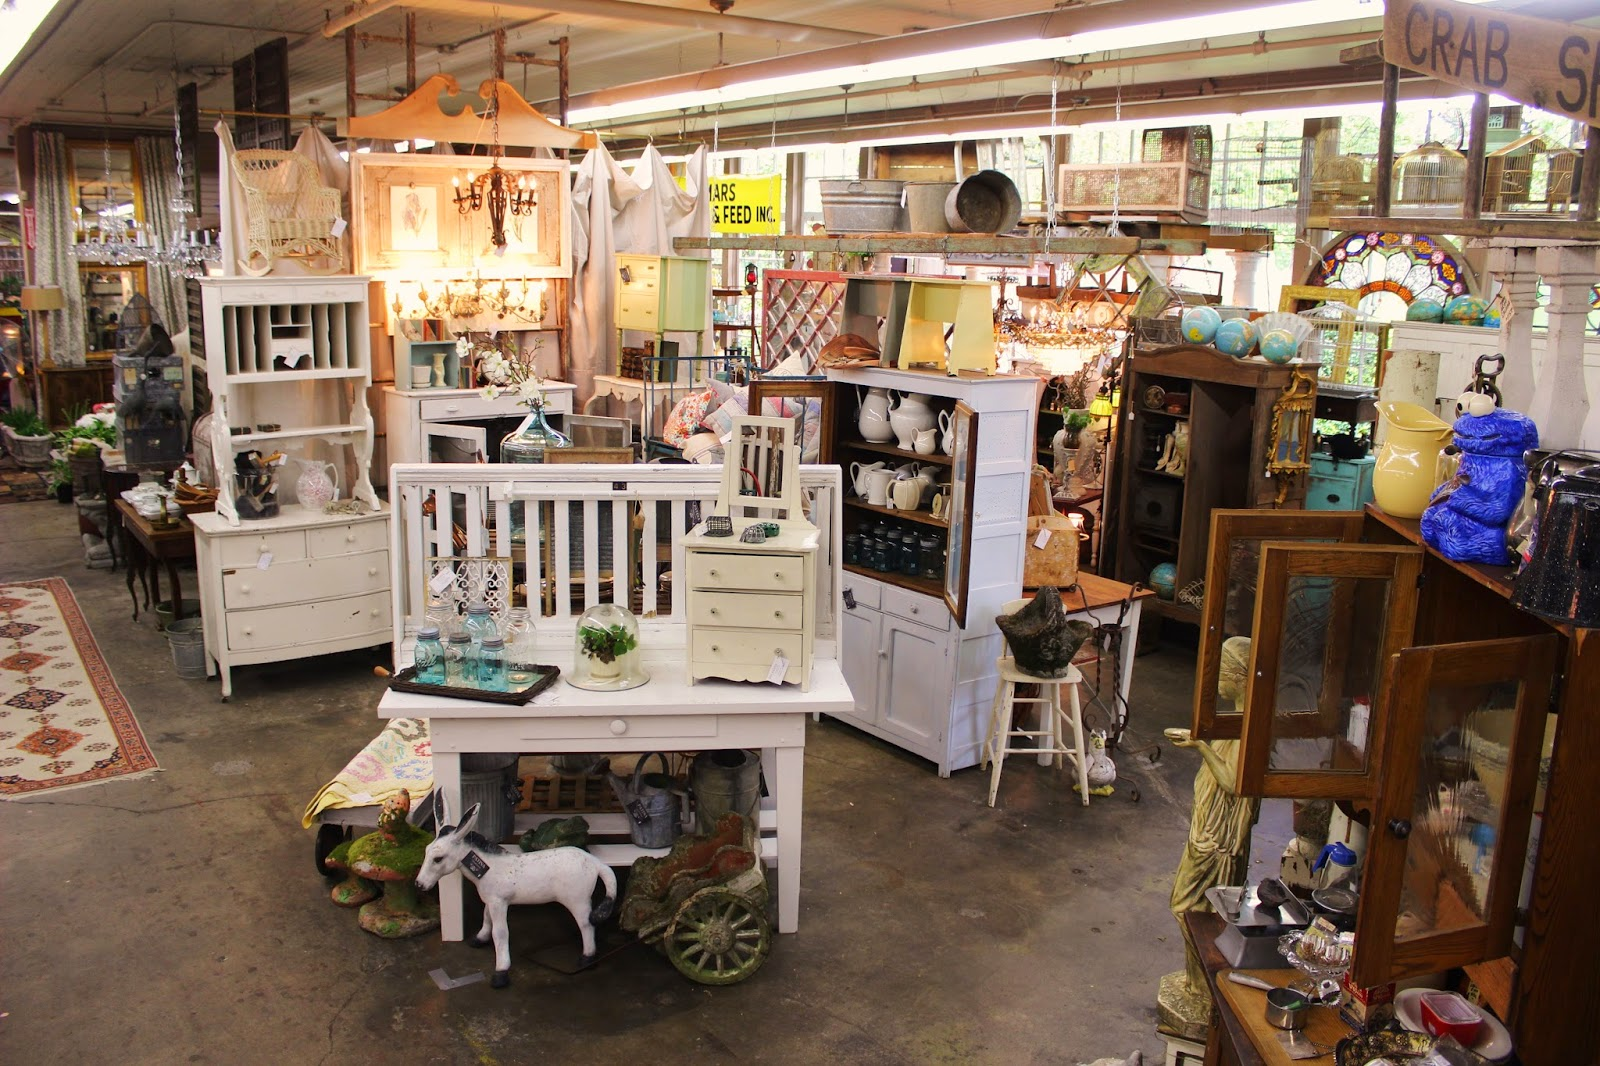 Monticello Antique Marketplace: Outdoor Living... on Rk Outdoor Living id=34683